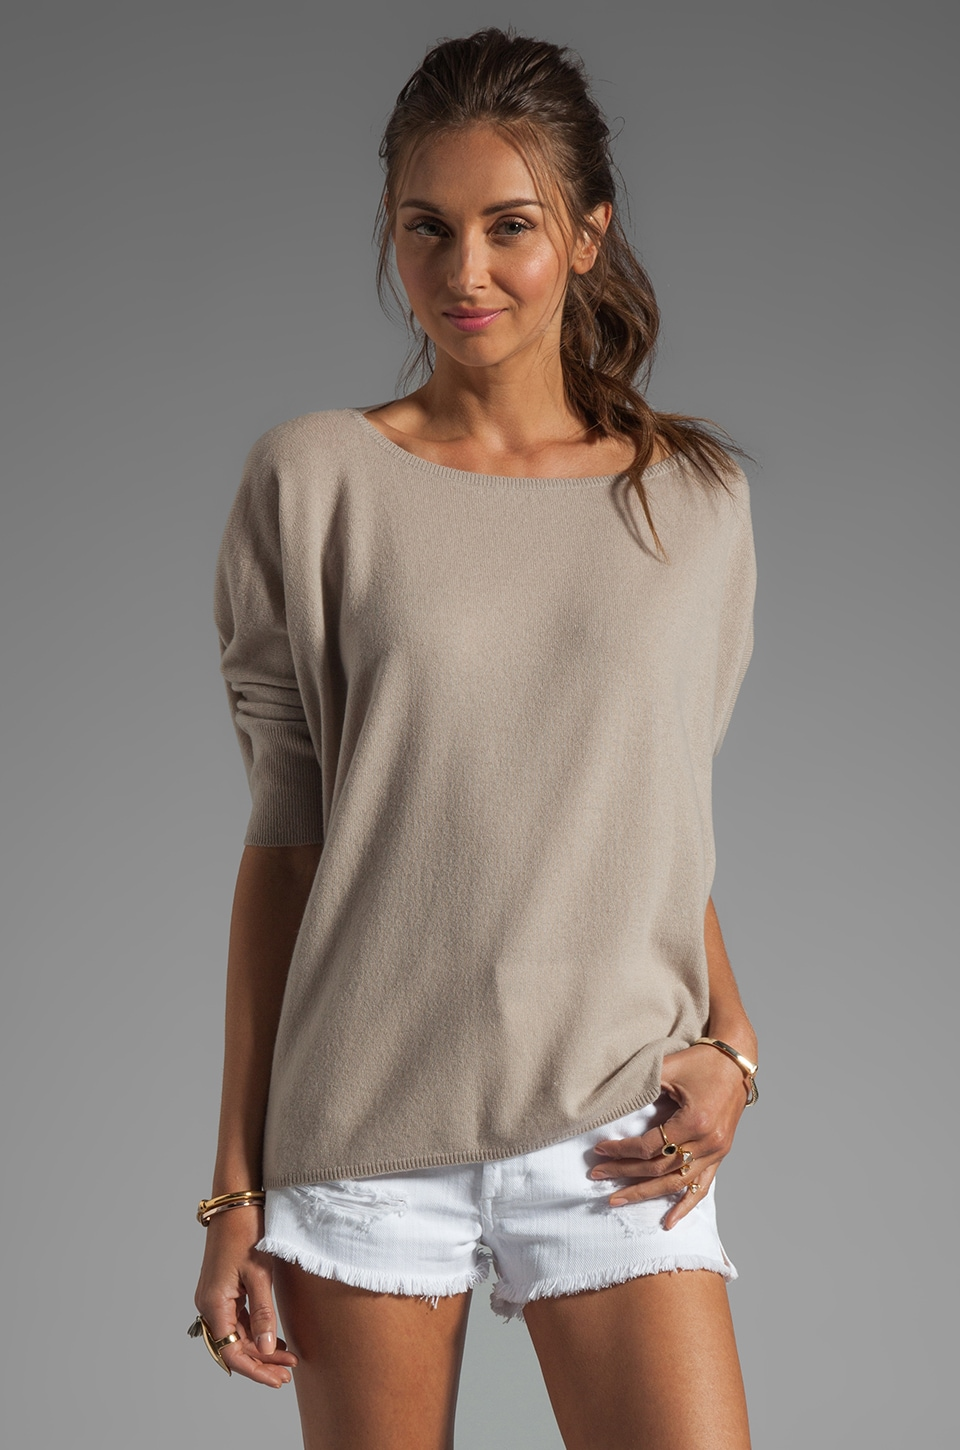 Vince 100% Cashmere Popover Sweater in Sesame